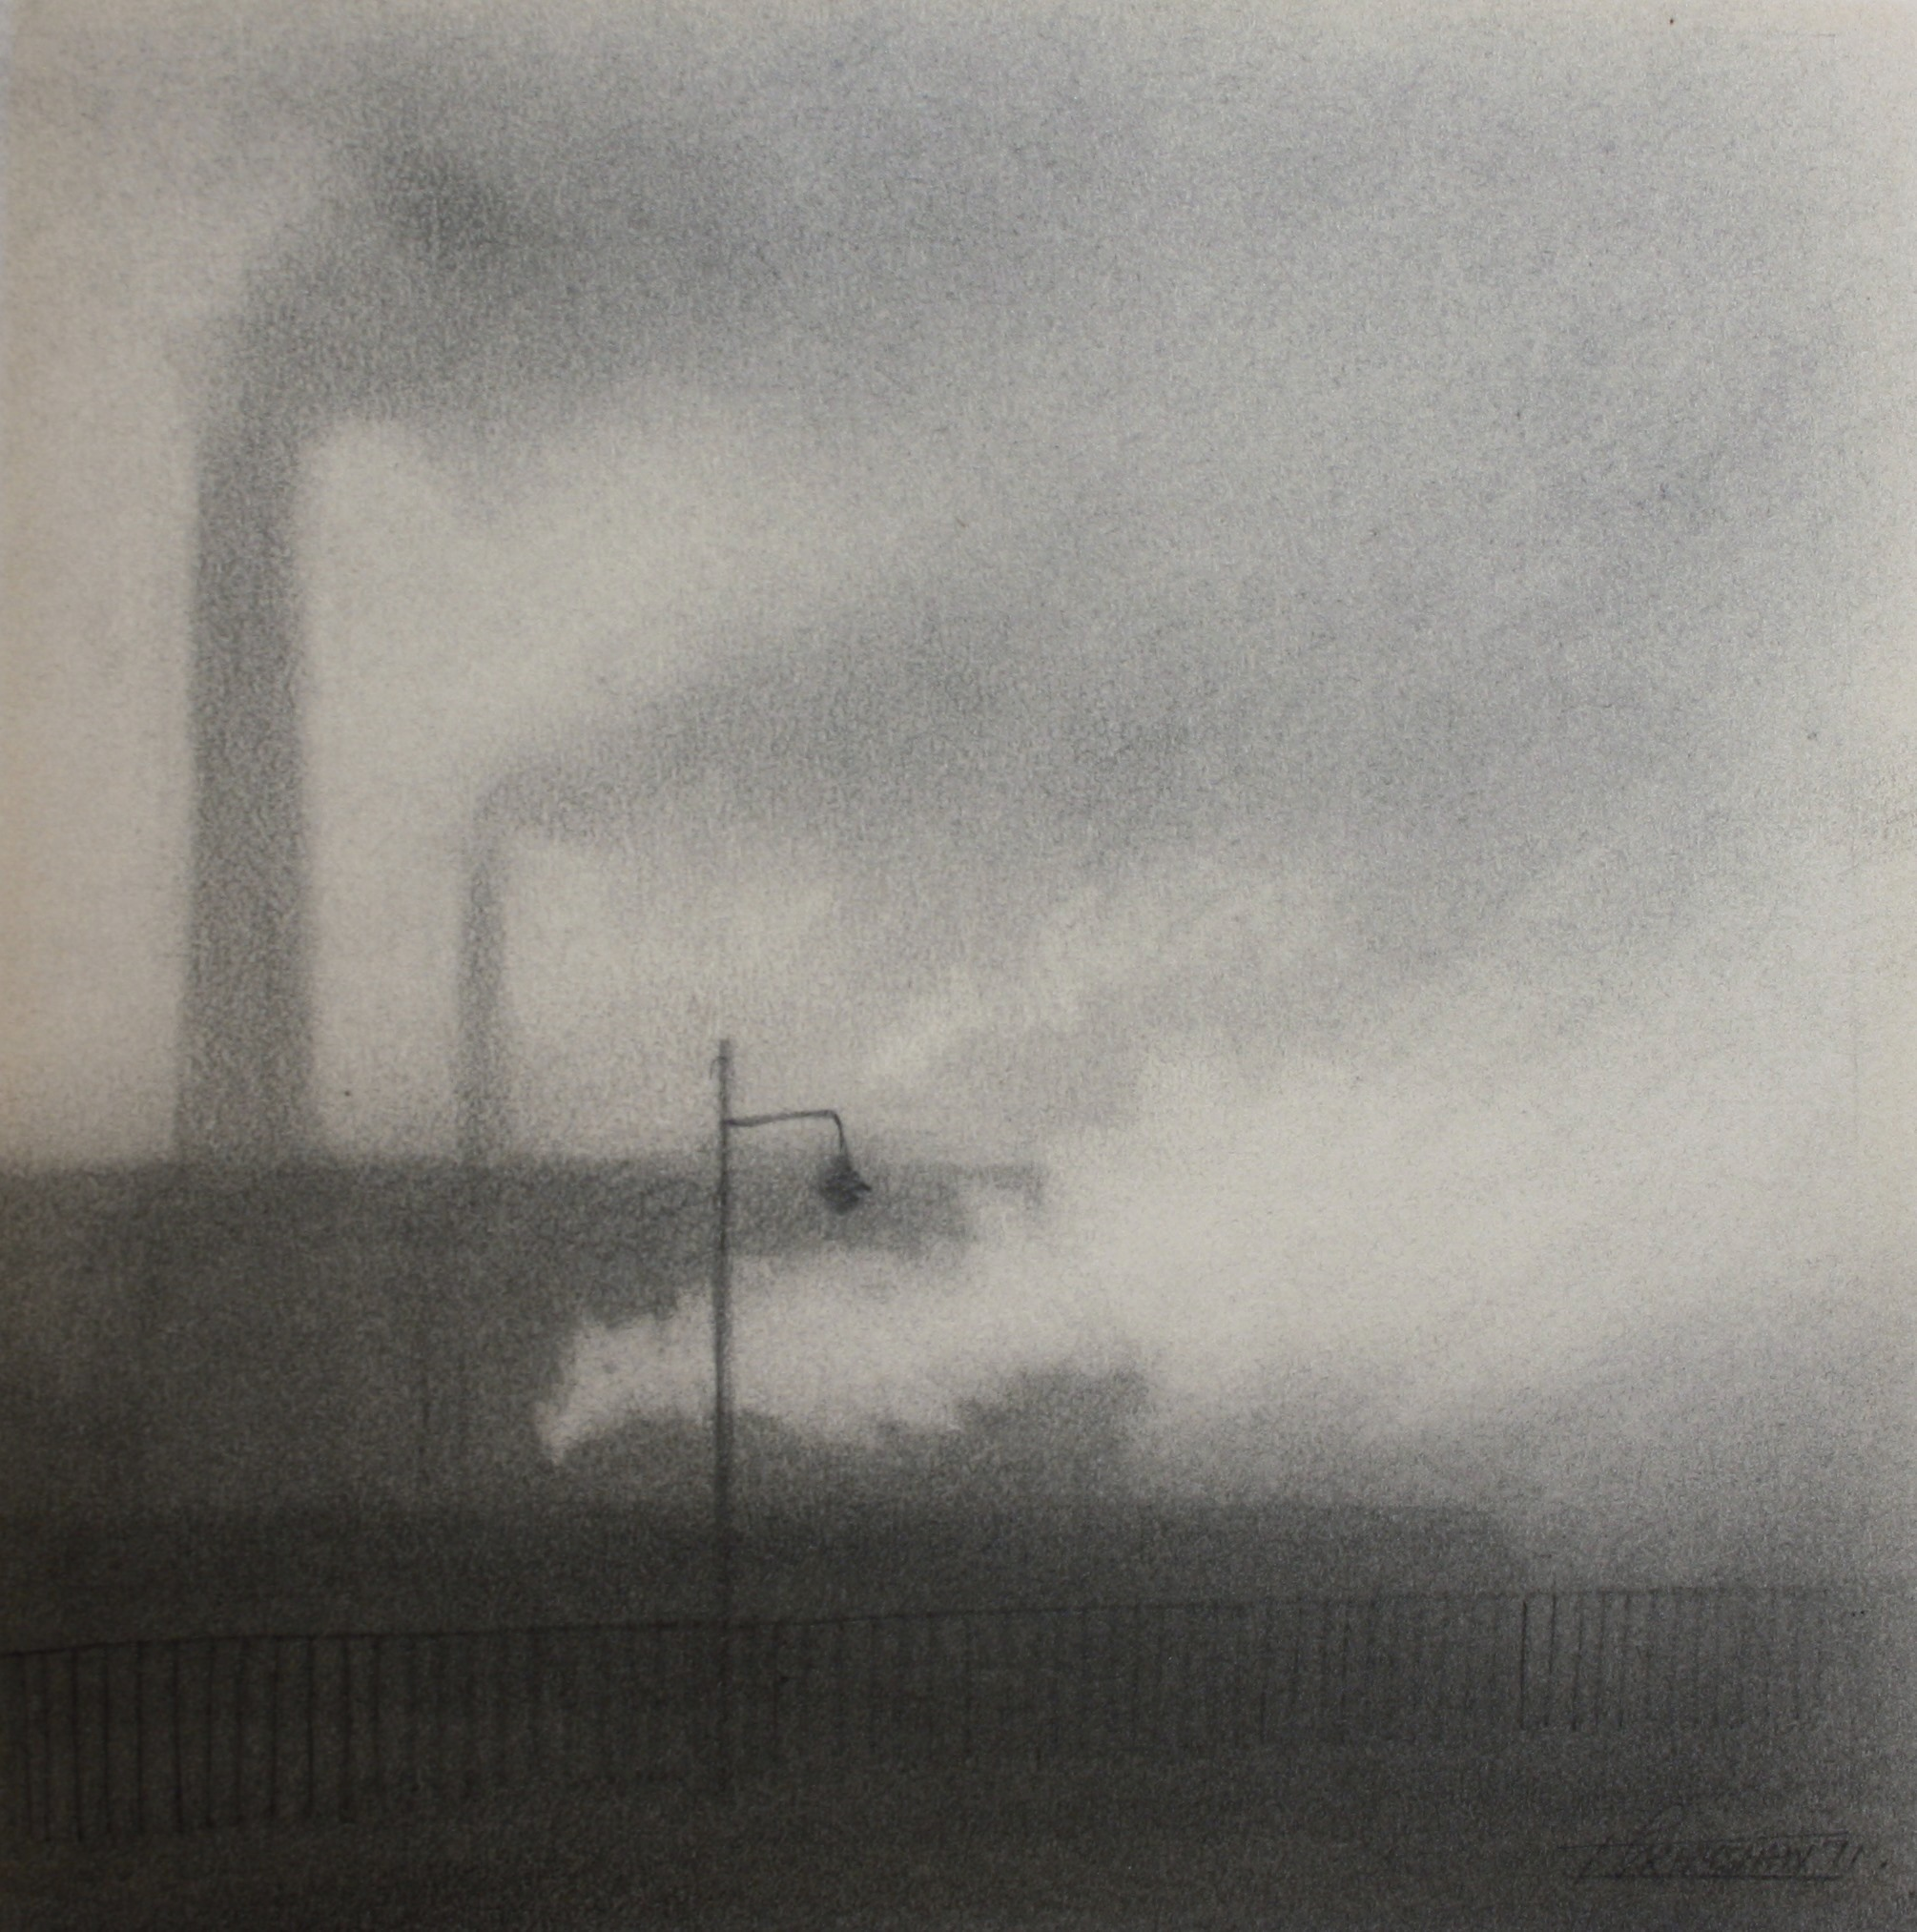 trevor grimshaw pencil smoke & steam 6.5ins x 6ins 1675